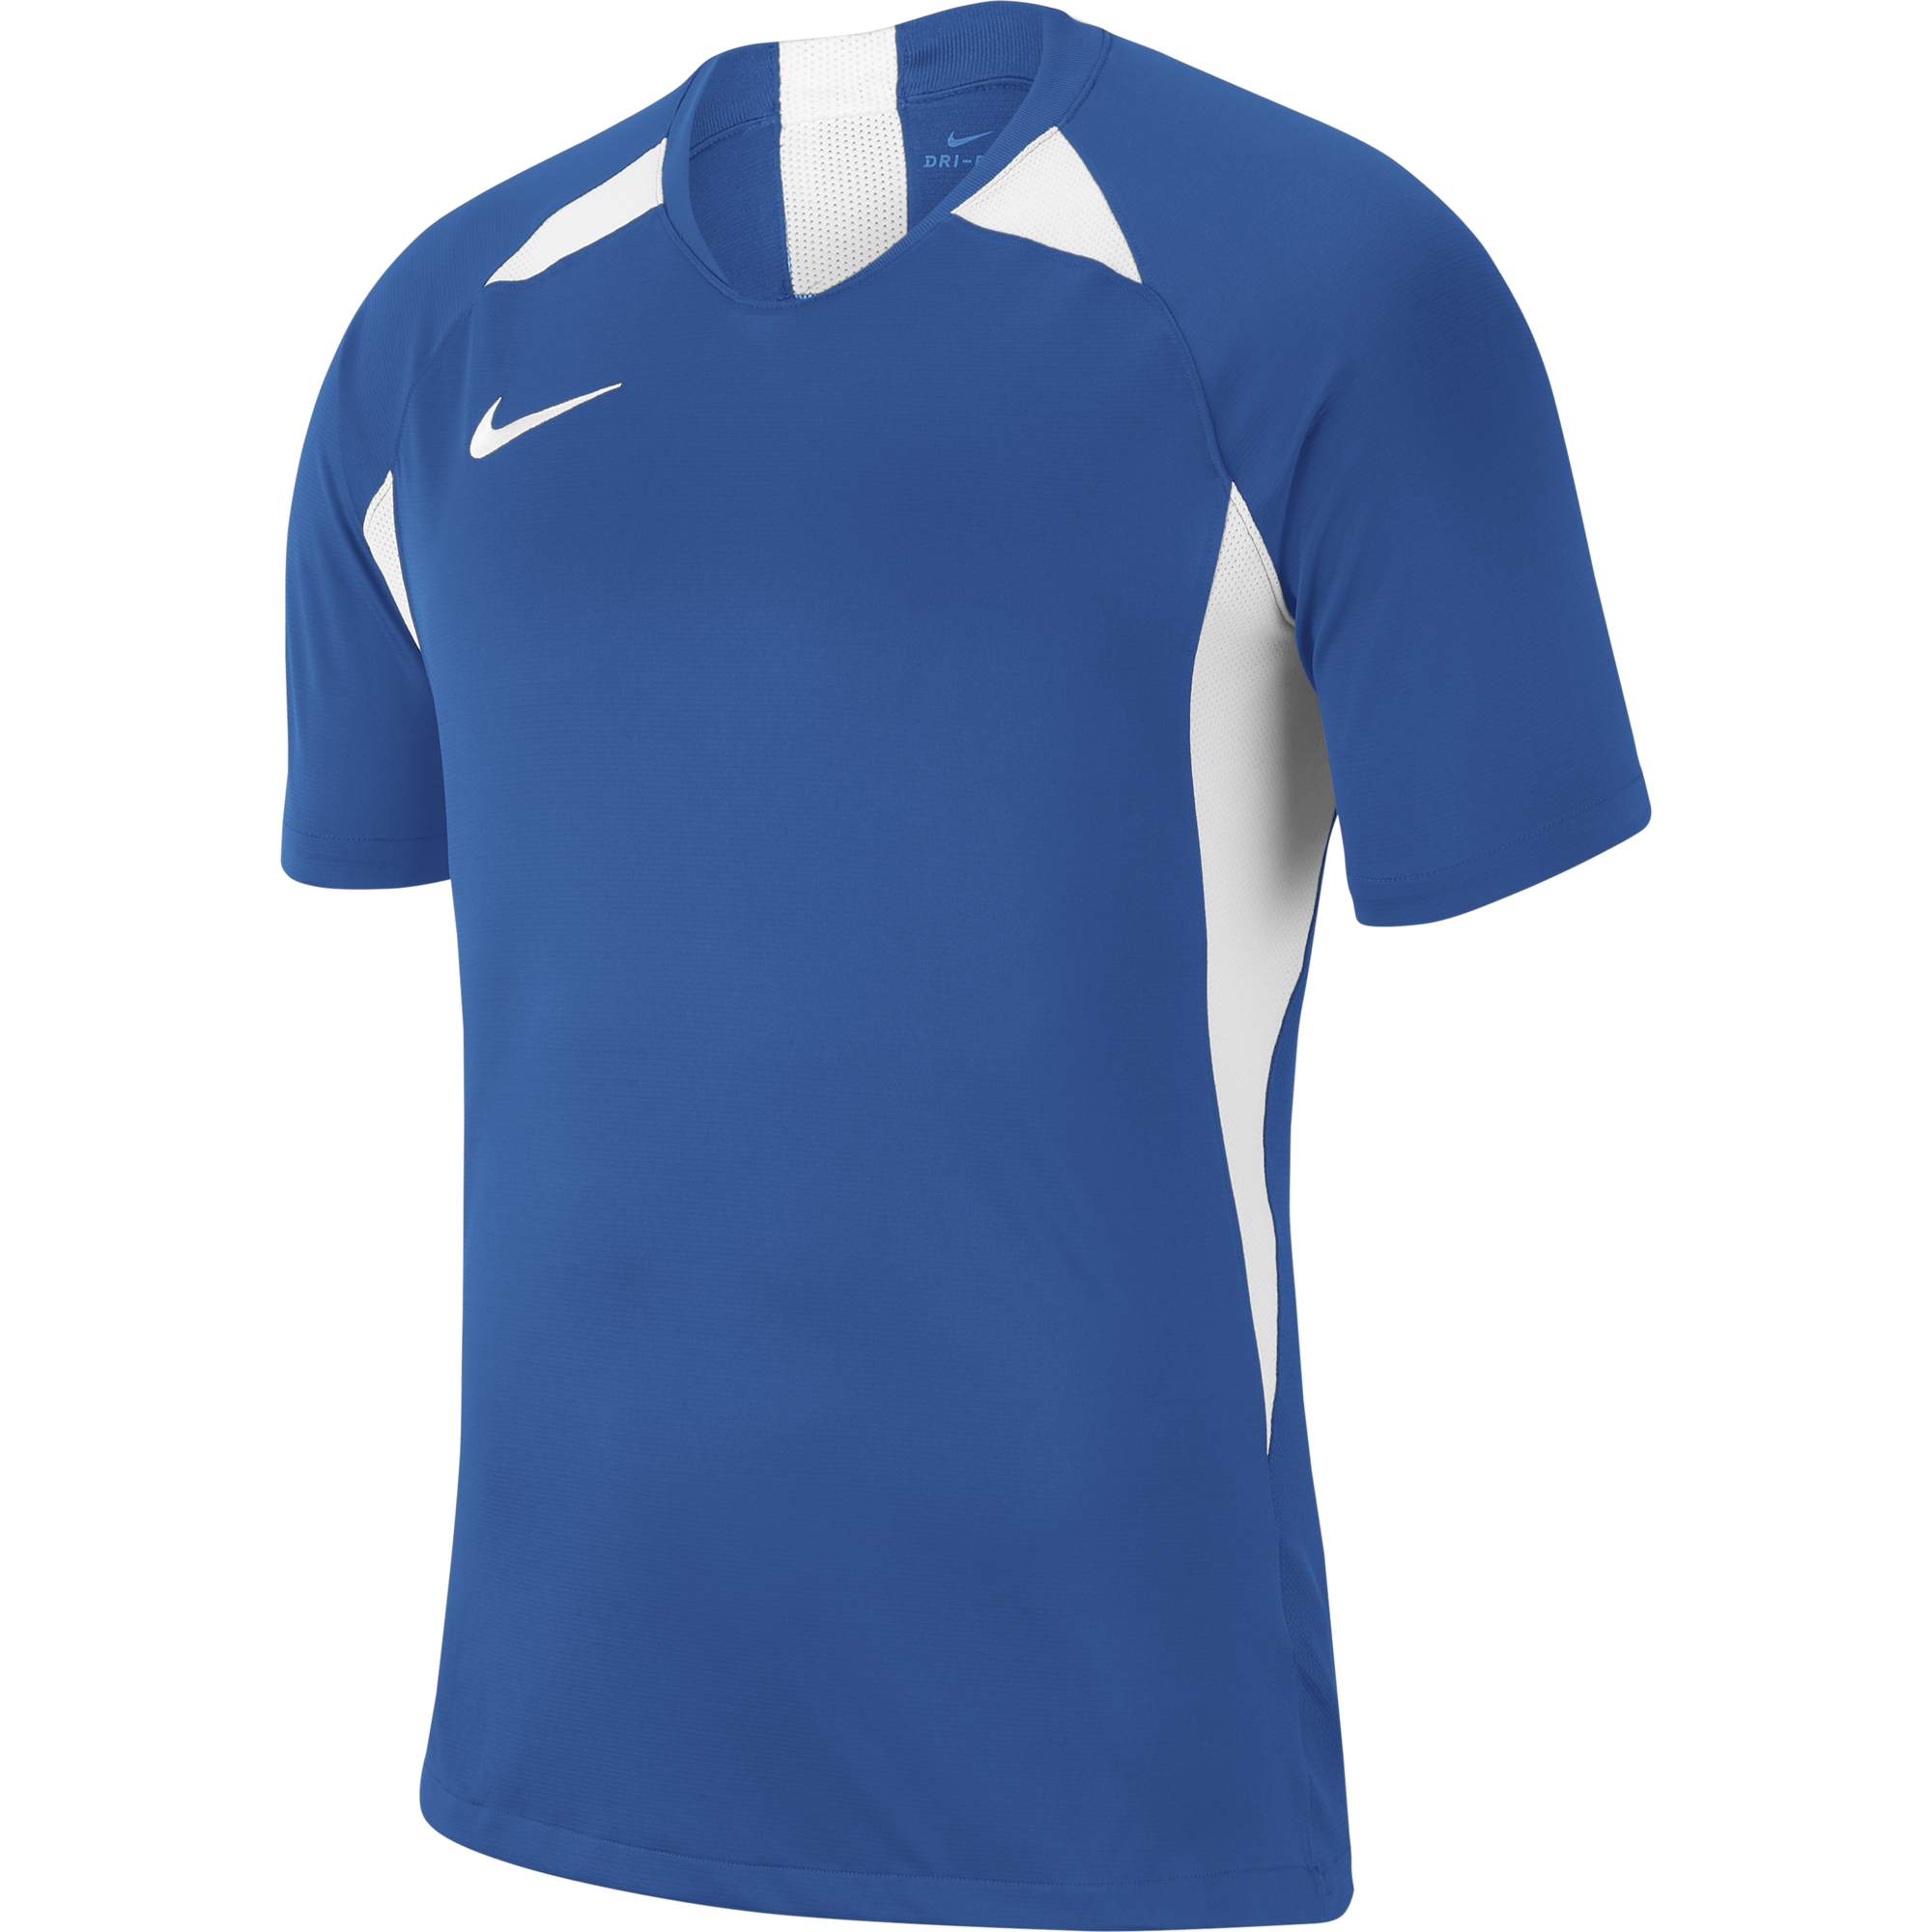 nike legend jersey royal blue white  15962 p